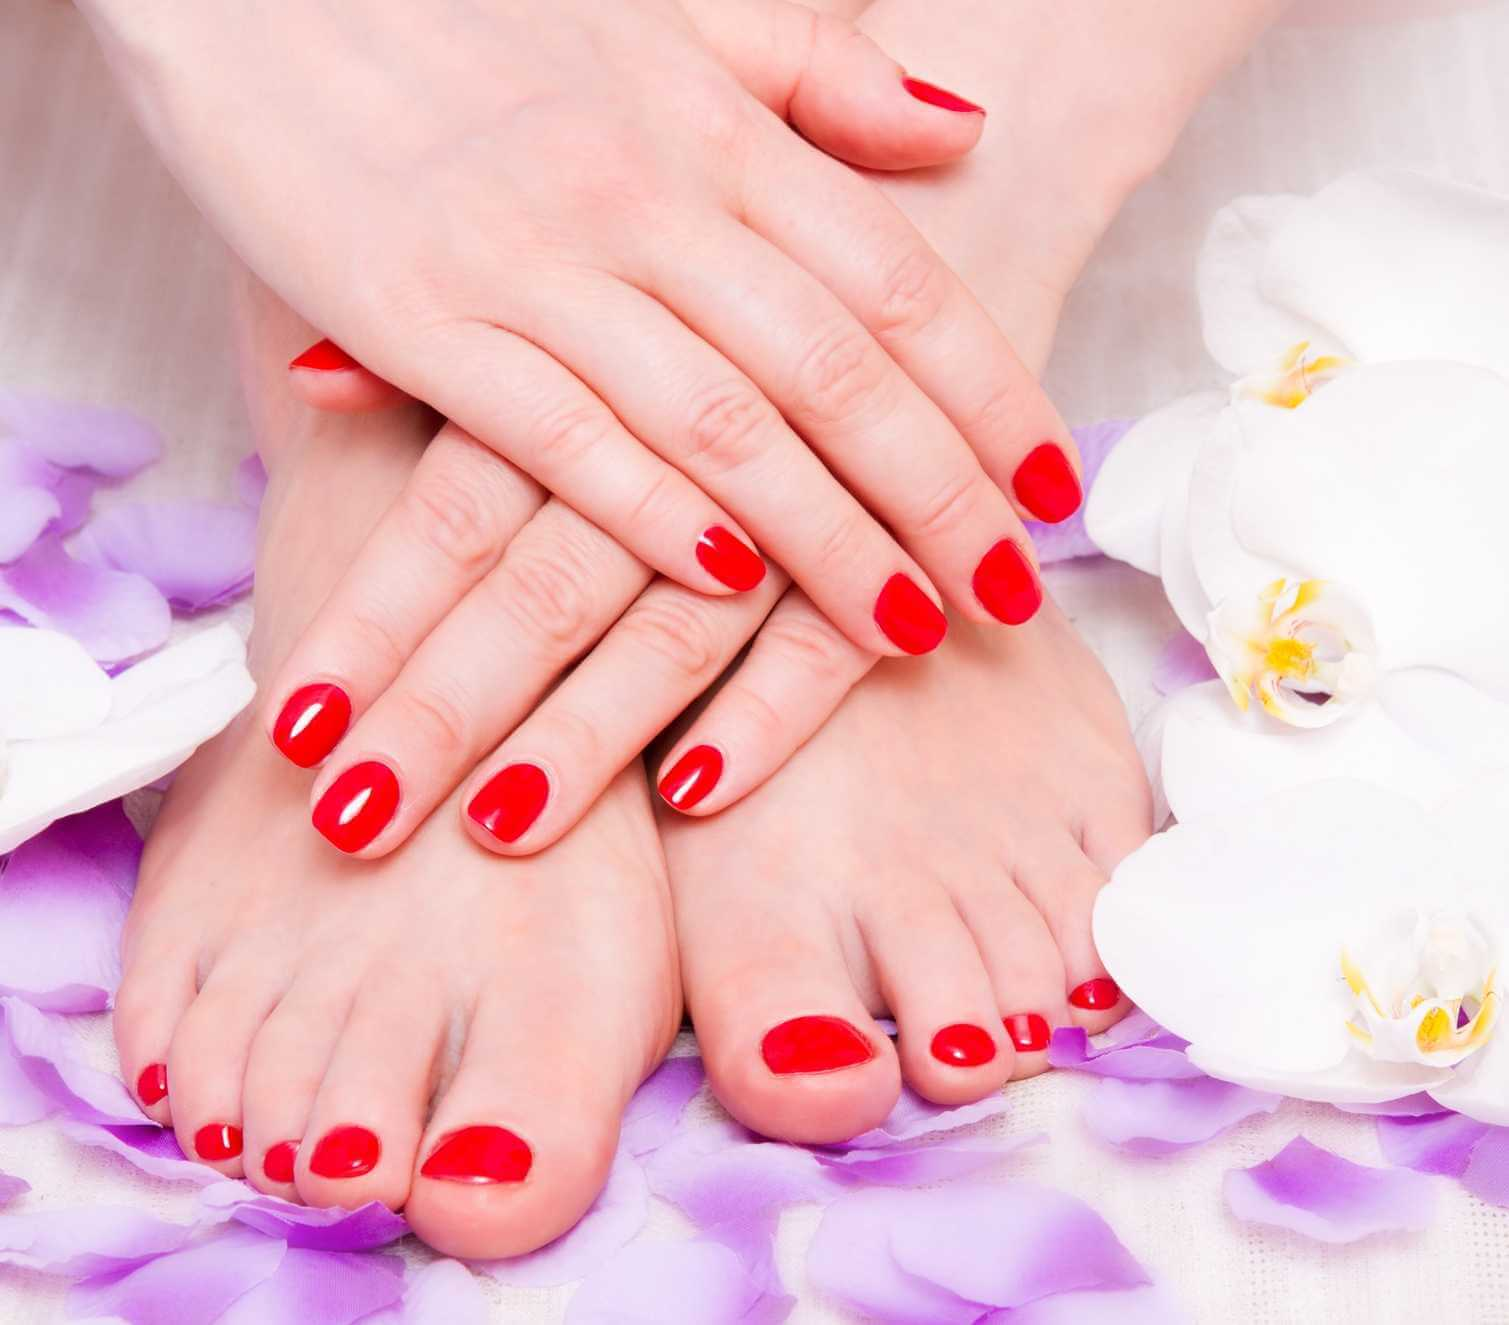 lady resting her hands with red fingernails on top of her feet with red toenails